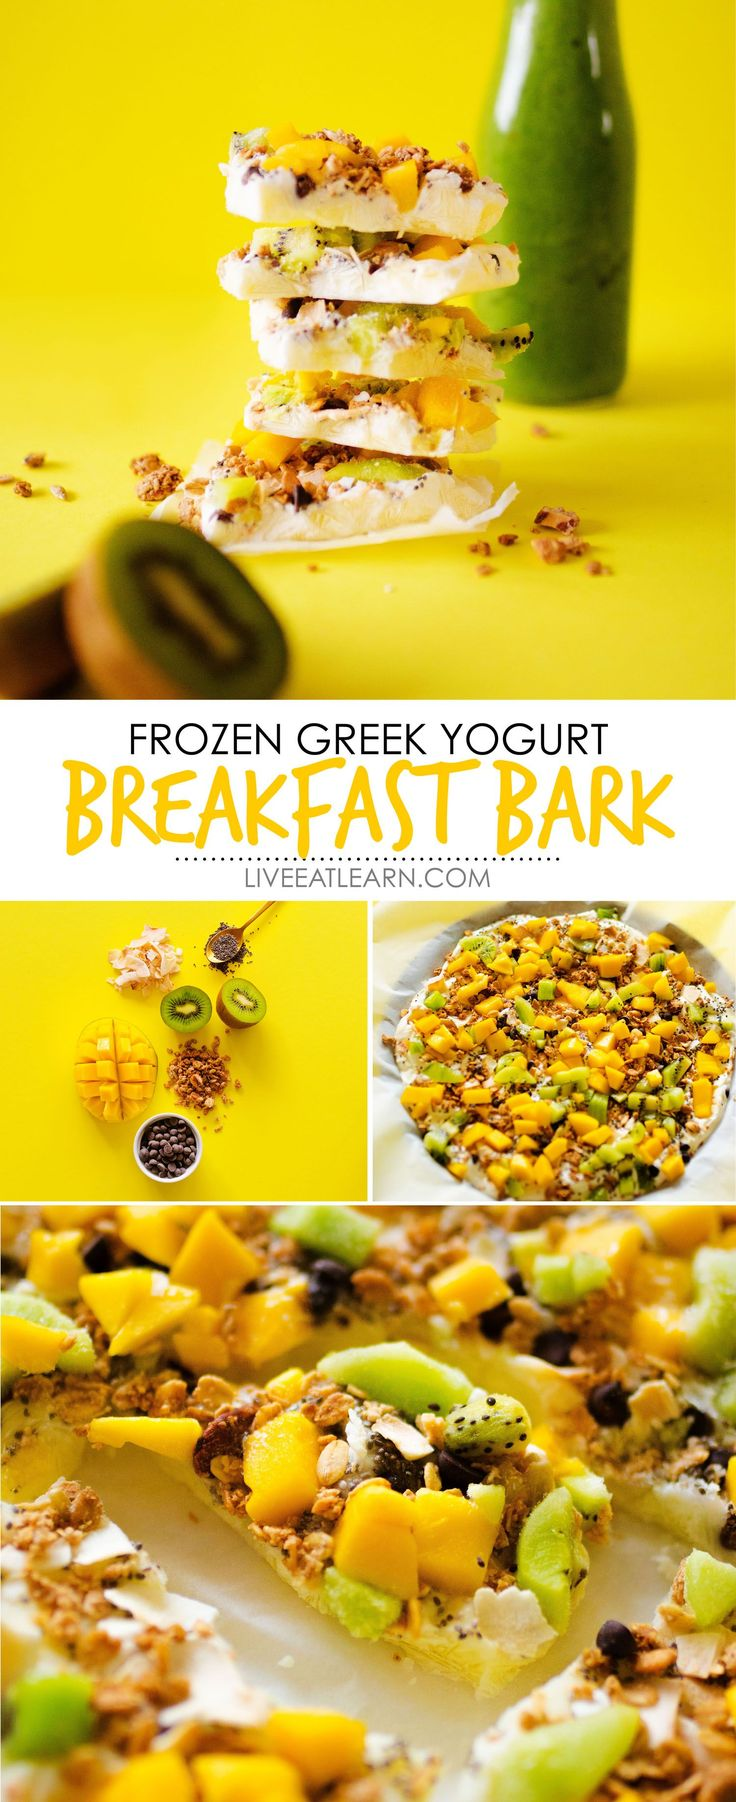 This Frozen Greek Yogurt Breakfast Bark recipe is a quick and healthy vegetarian breakfast recipe thats super flexible (and tasty!) Meal prep it at night and serve it in the morning for a high protein breakfast that will keep you energized all morning. via @live_eat_learn